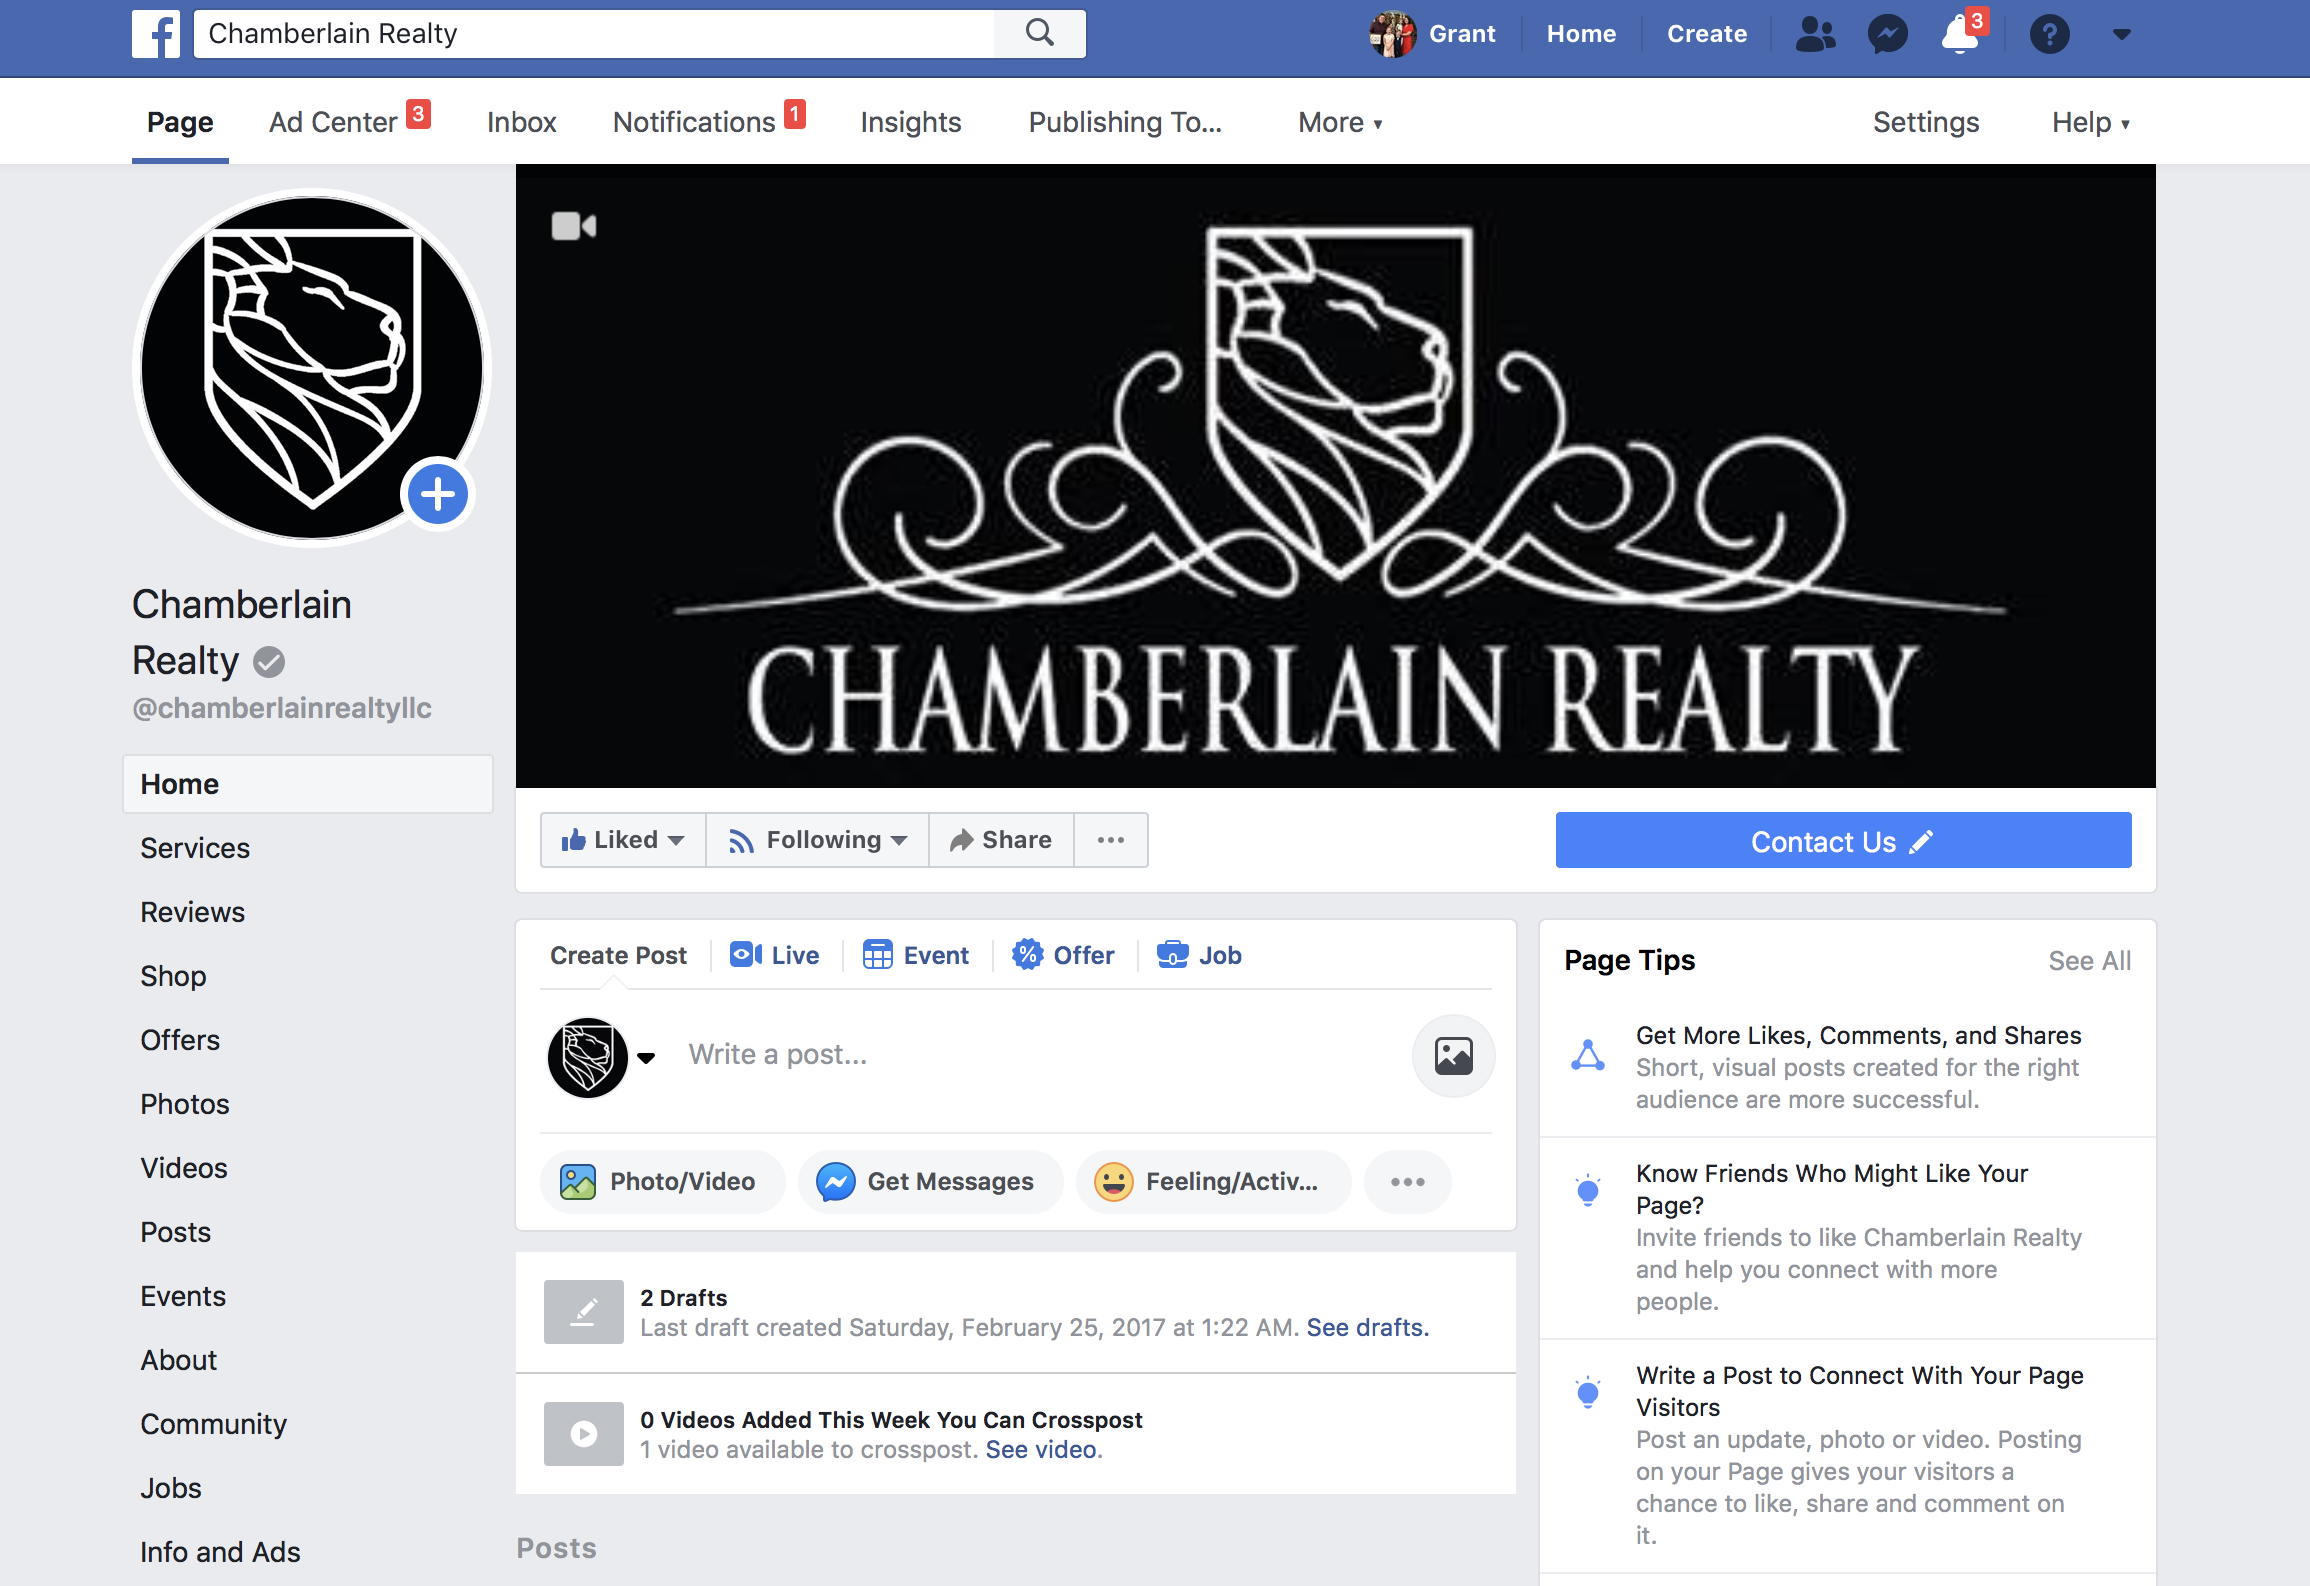 Chamberlain Realty Public Facebook Page - Our company hub to share with the public what's going on.